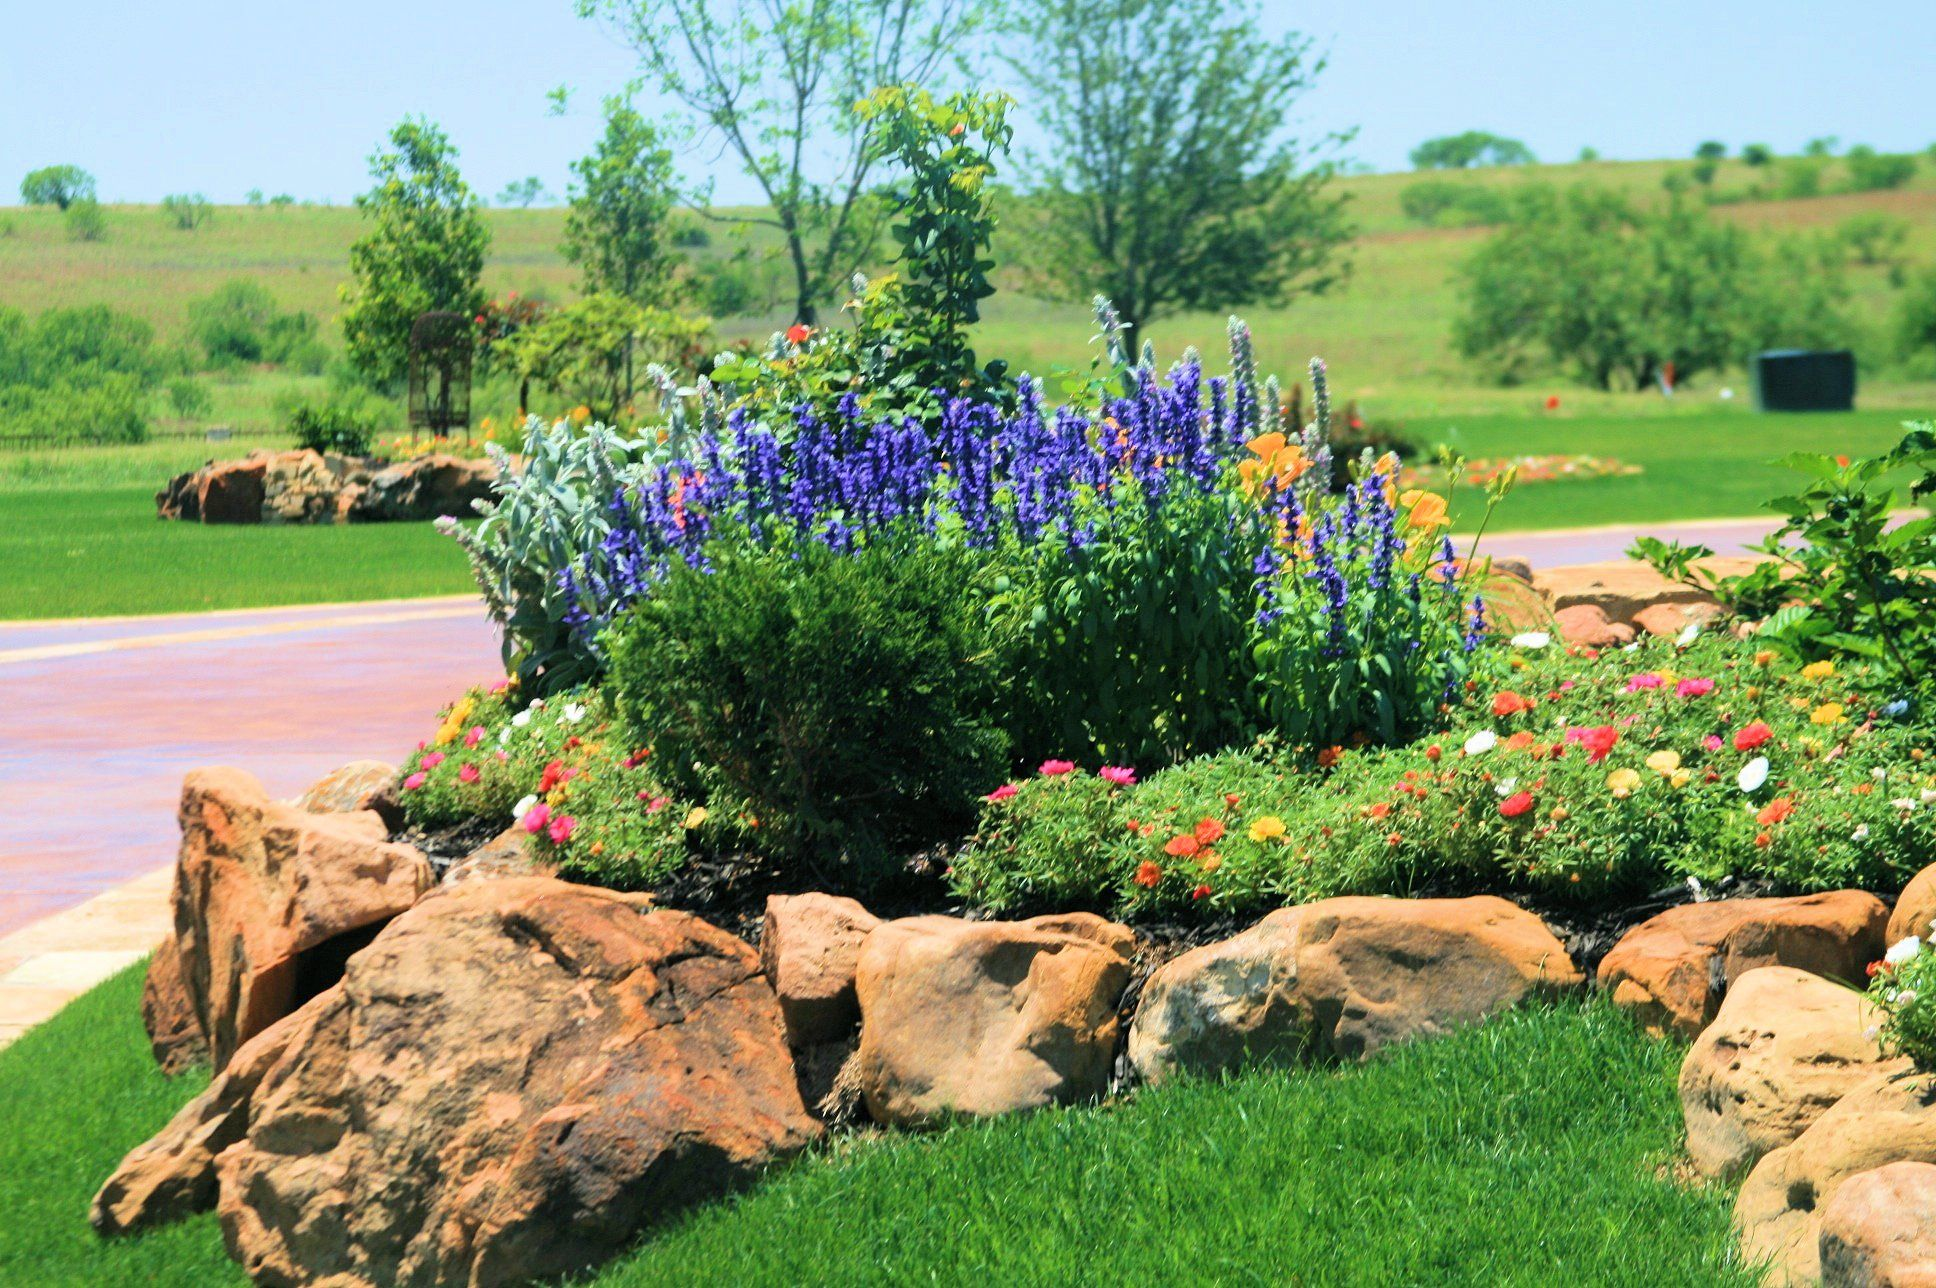 North texas landscape designs Award Winning Landscape Designs